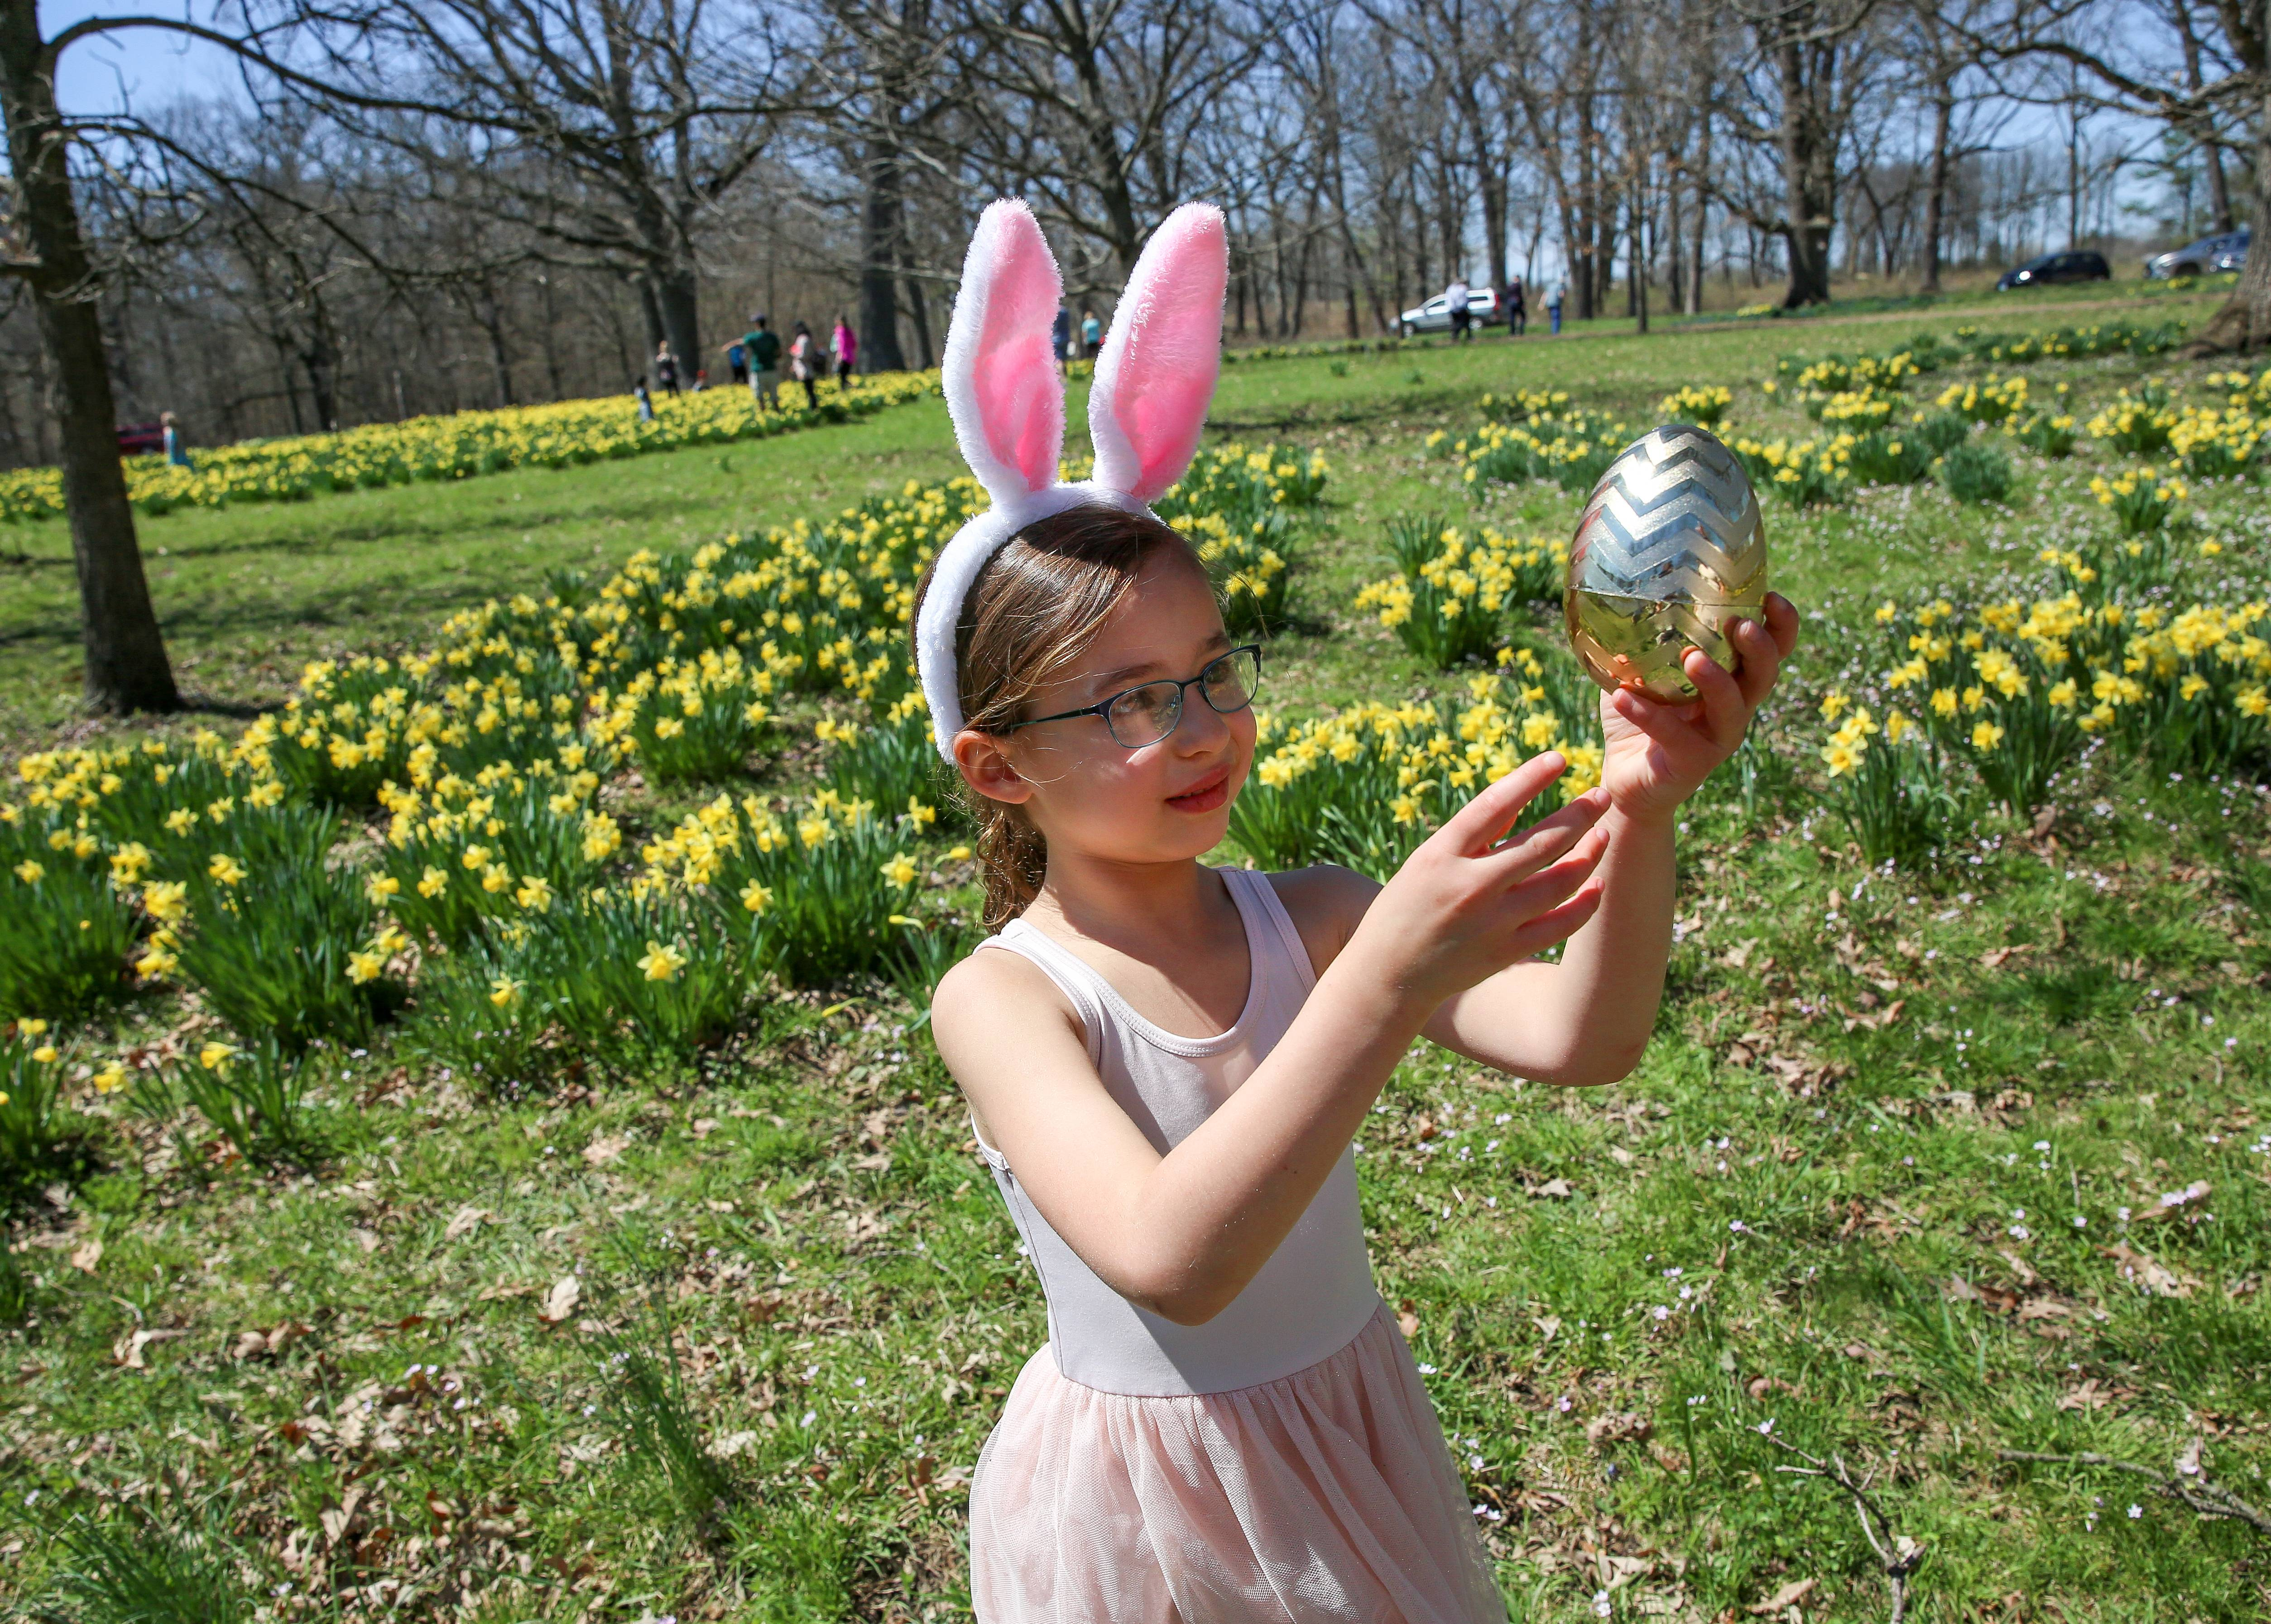 Eliana Gilbert, 5, of Arlington Heights, shows off one of her Easter eggs as she visits the Morton Arboretum in Lisle with her family to see the daffodils in bloom.